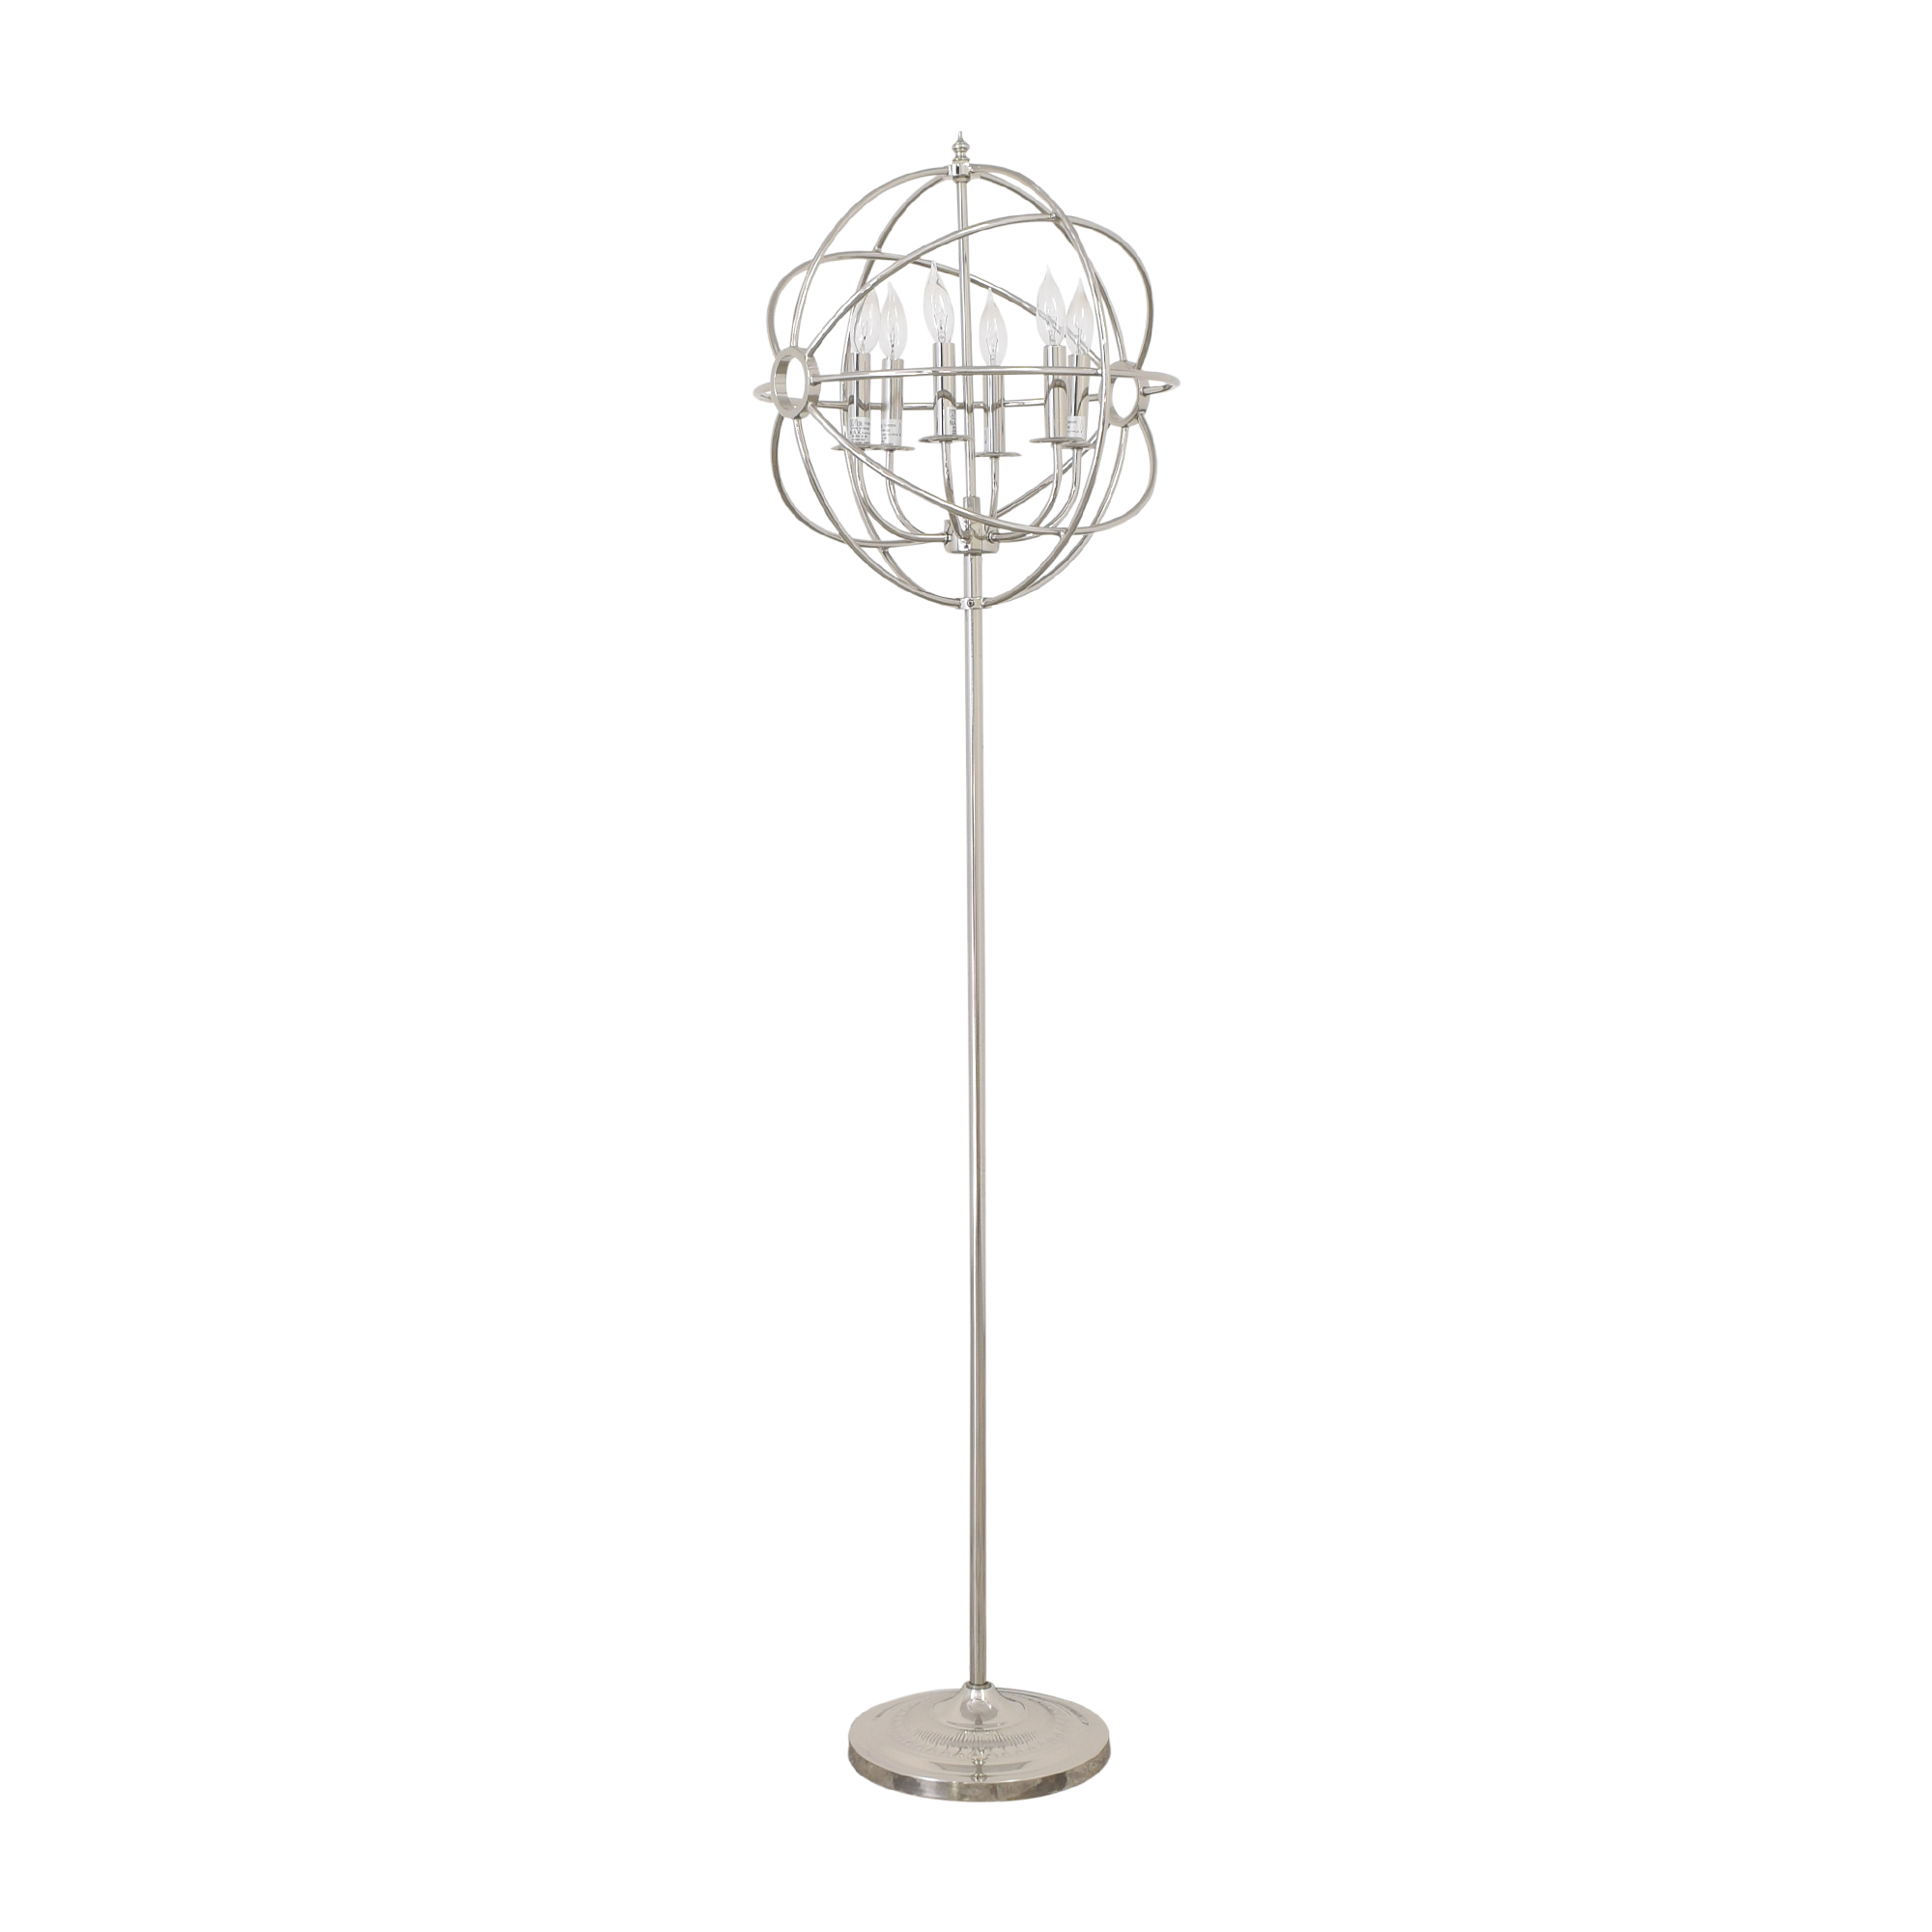 Restoration Hardware Restoration Hardware Foucault's Orb Floor Lamp for sale